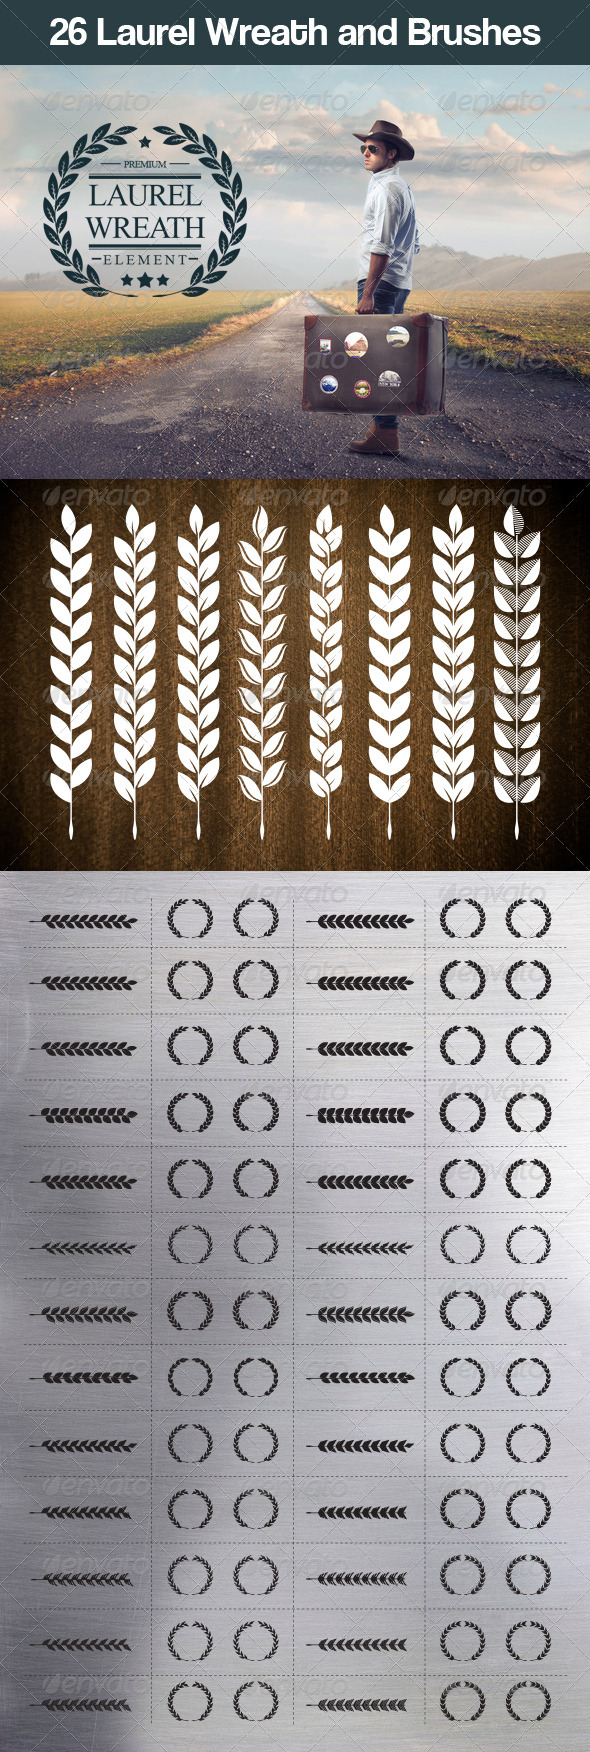 GraphicRiver 26 Laurel Wreath and Brushes 7031527